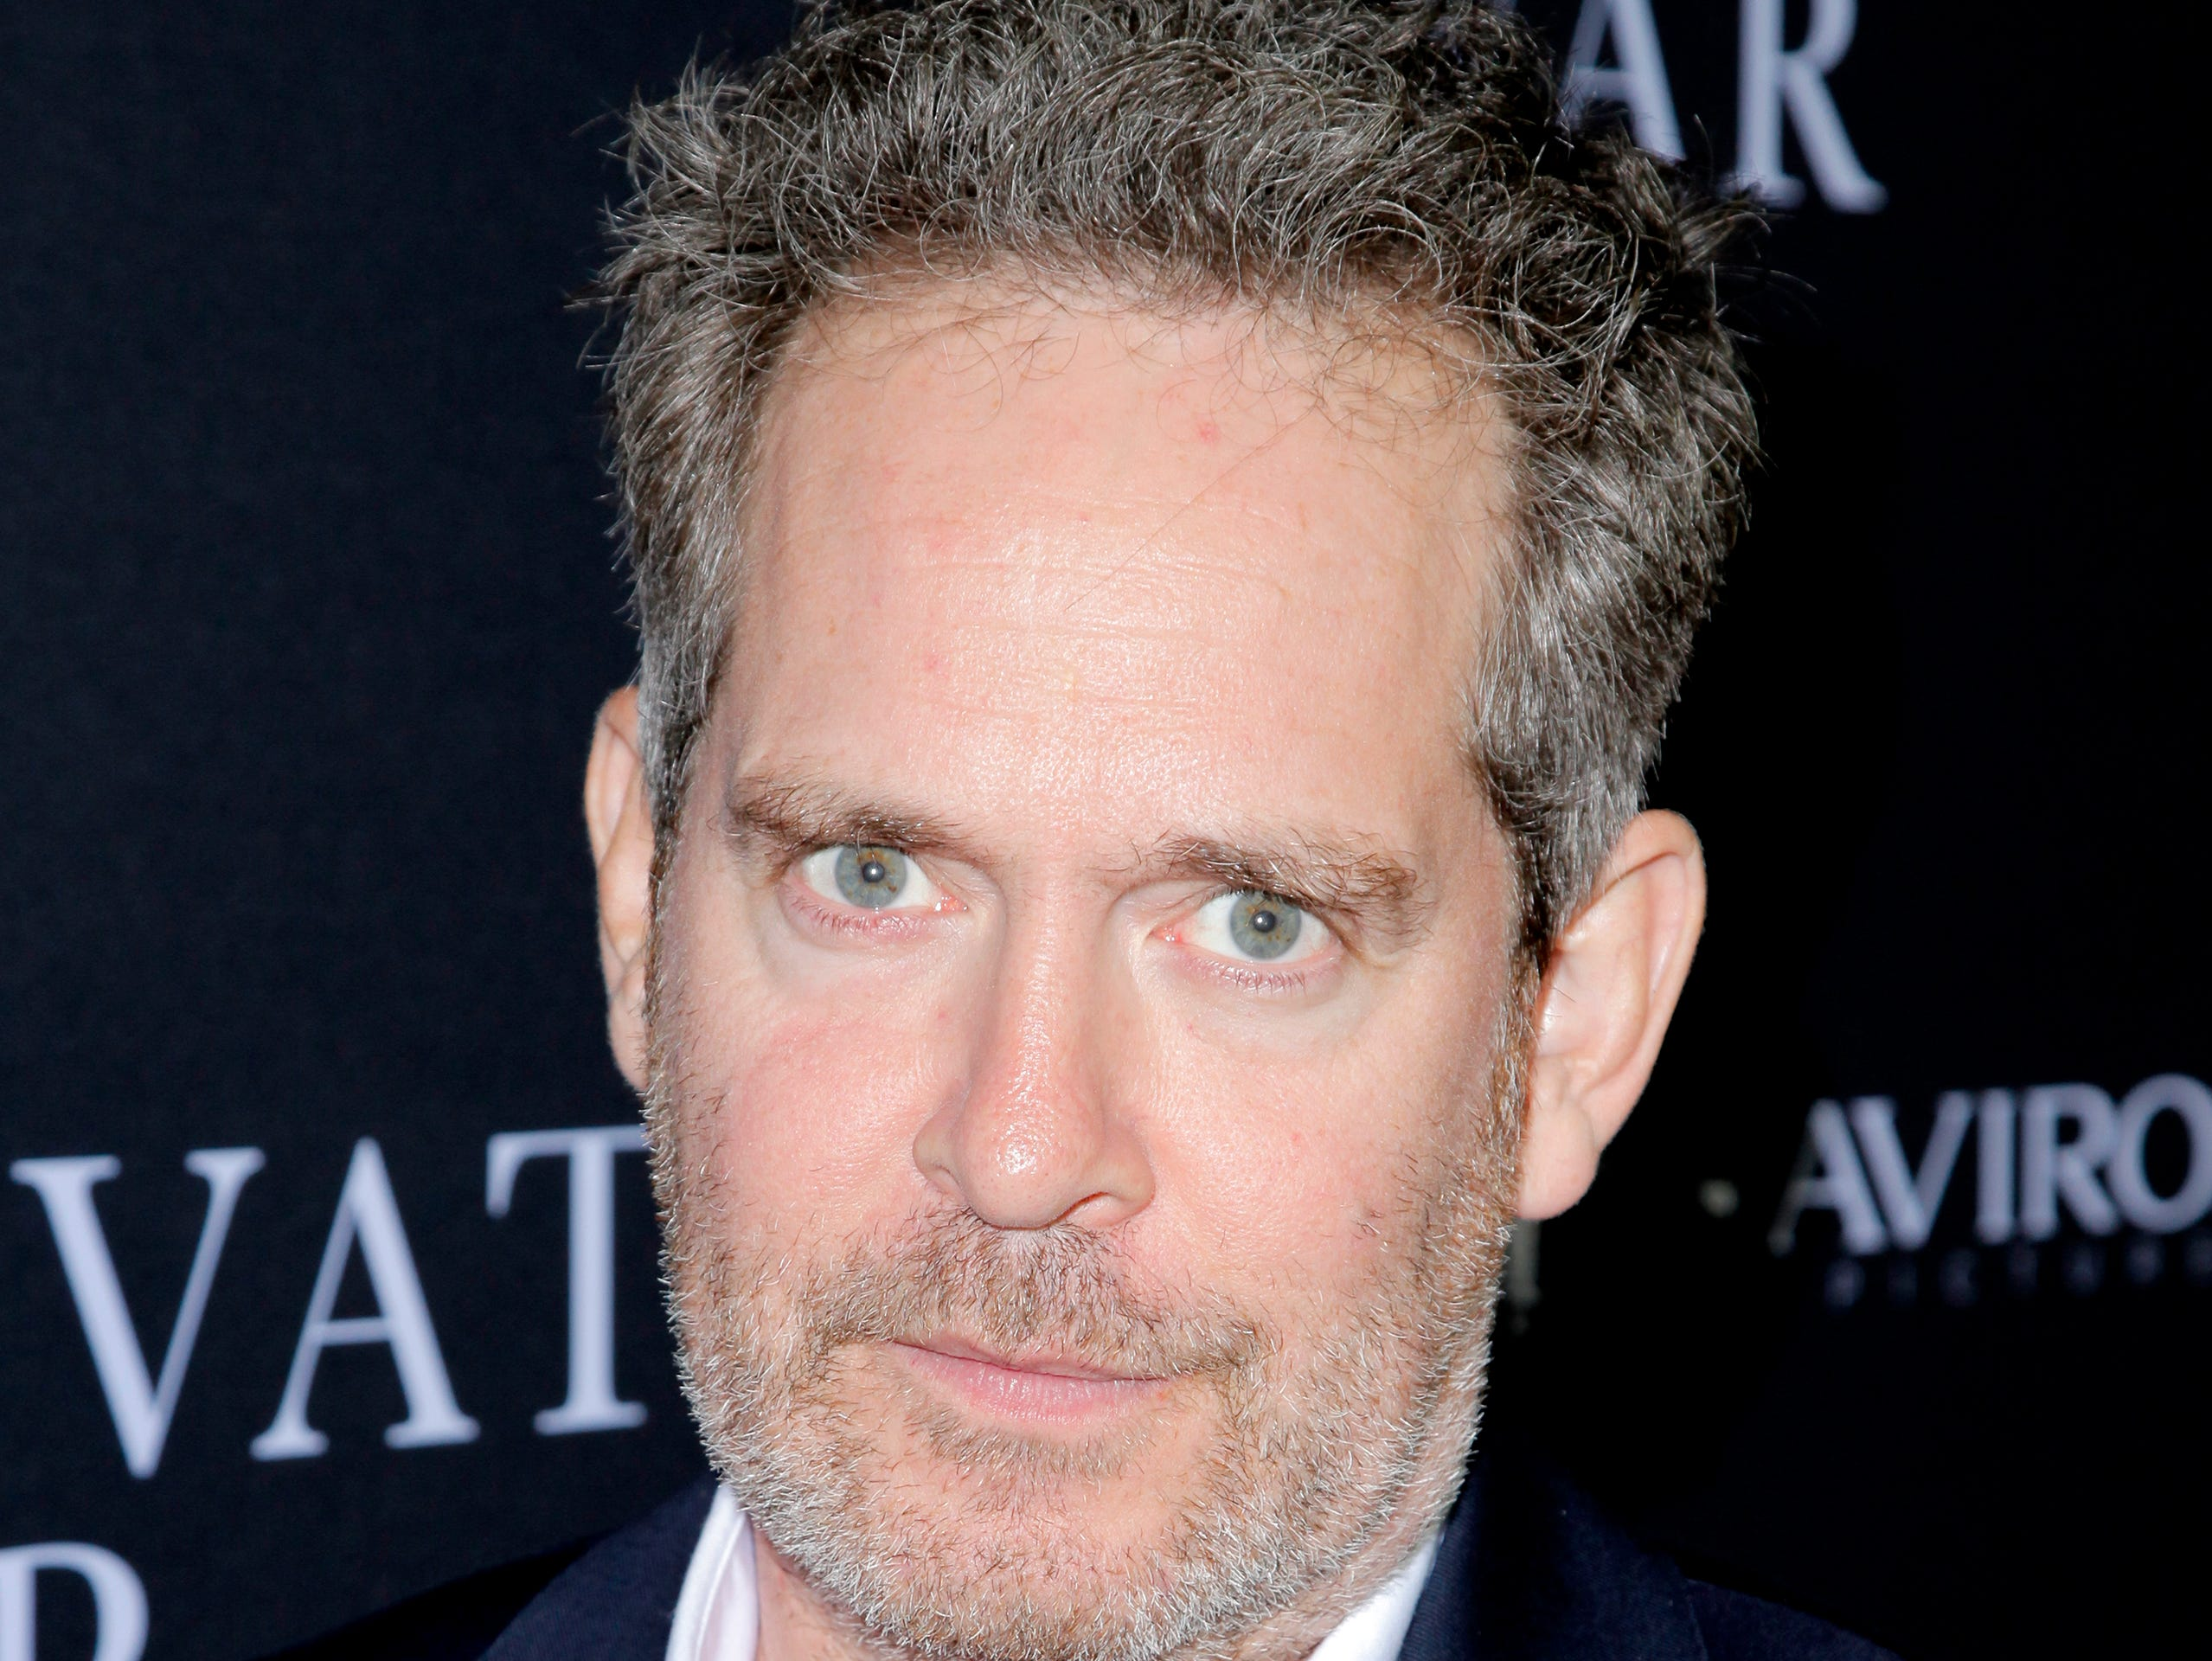 BEVERLY HILLS, CA - OCTOBER 24:  Tom Hollander attends the Los Angeles premiere of 'A Private War' at Samuel Goldwyn Theater on October 24, 2018 in Beverly Hills, California.  (Photo by Tibrina Hobson/Getty Images) ORG XMIT: 775244093 ORIG FILE ID: 1053245506